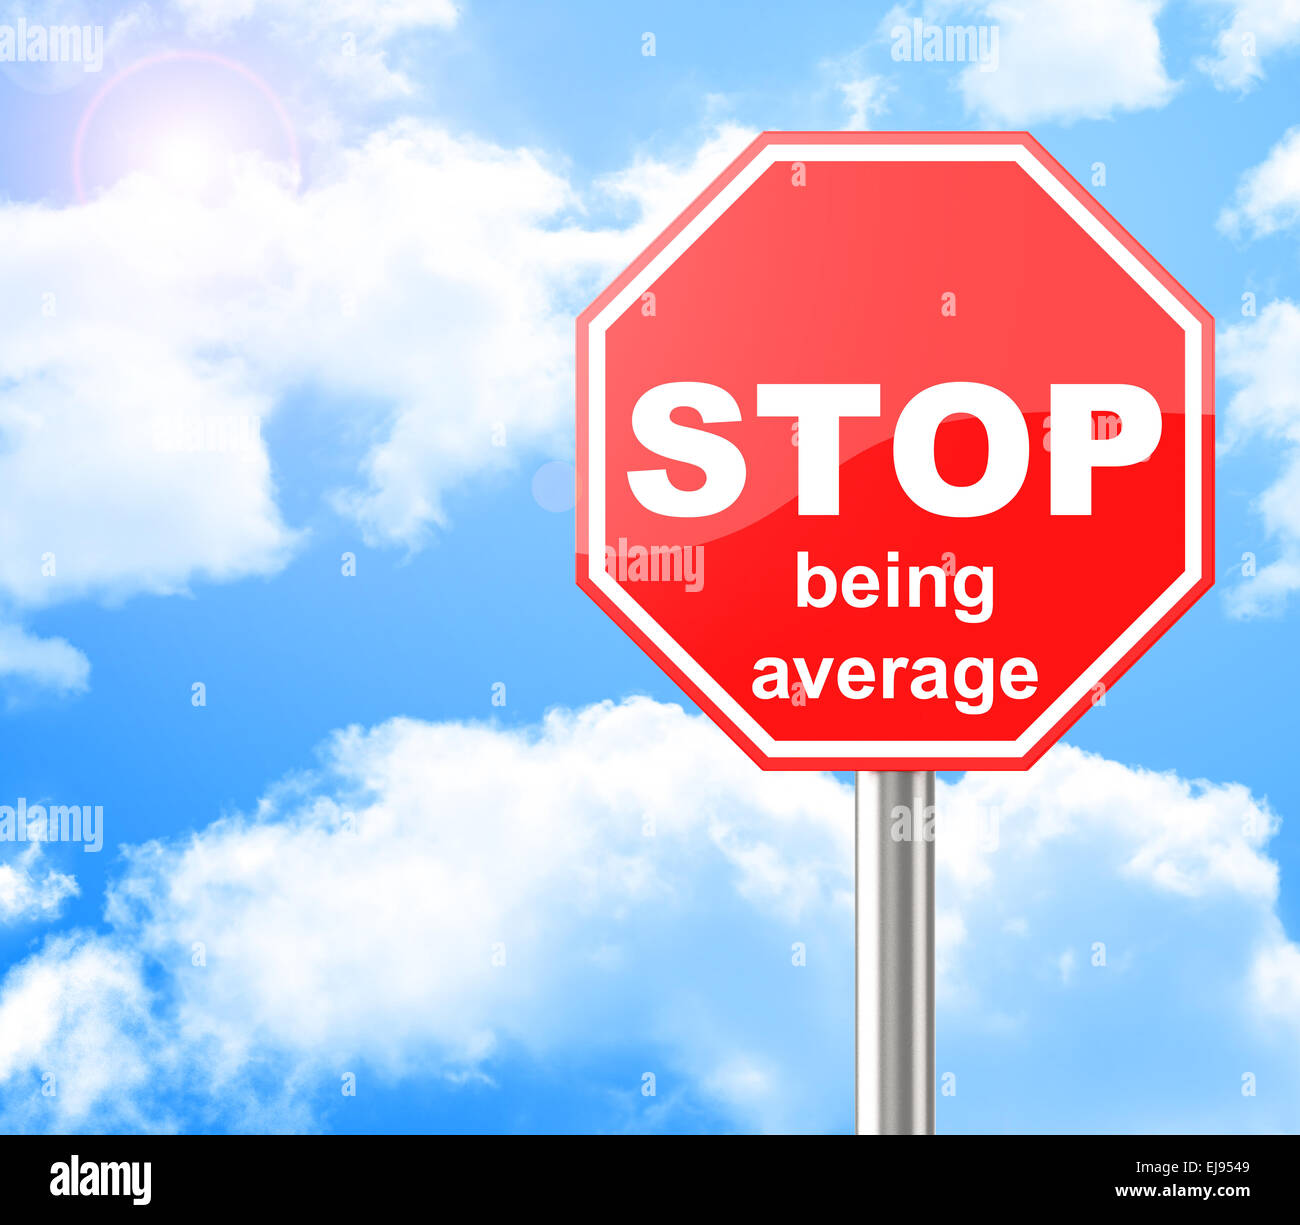 stop being average - Stock Image